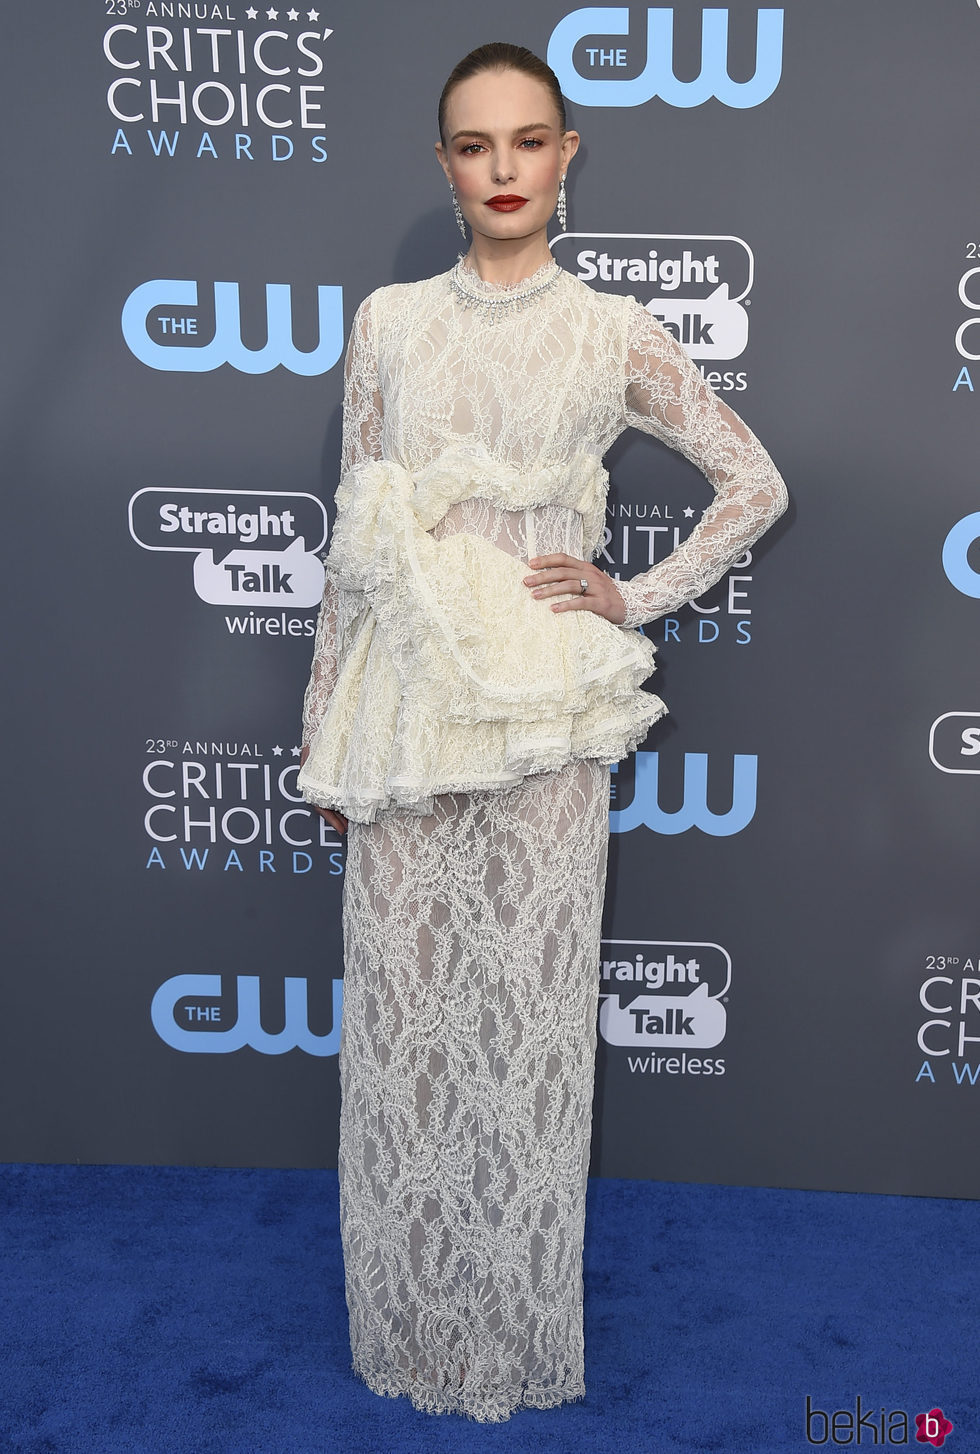 Kate Bosworth en la alfombra roja de los Critics' Choice Awards 2018